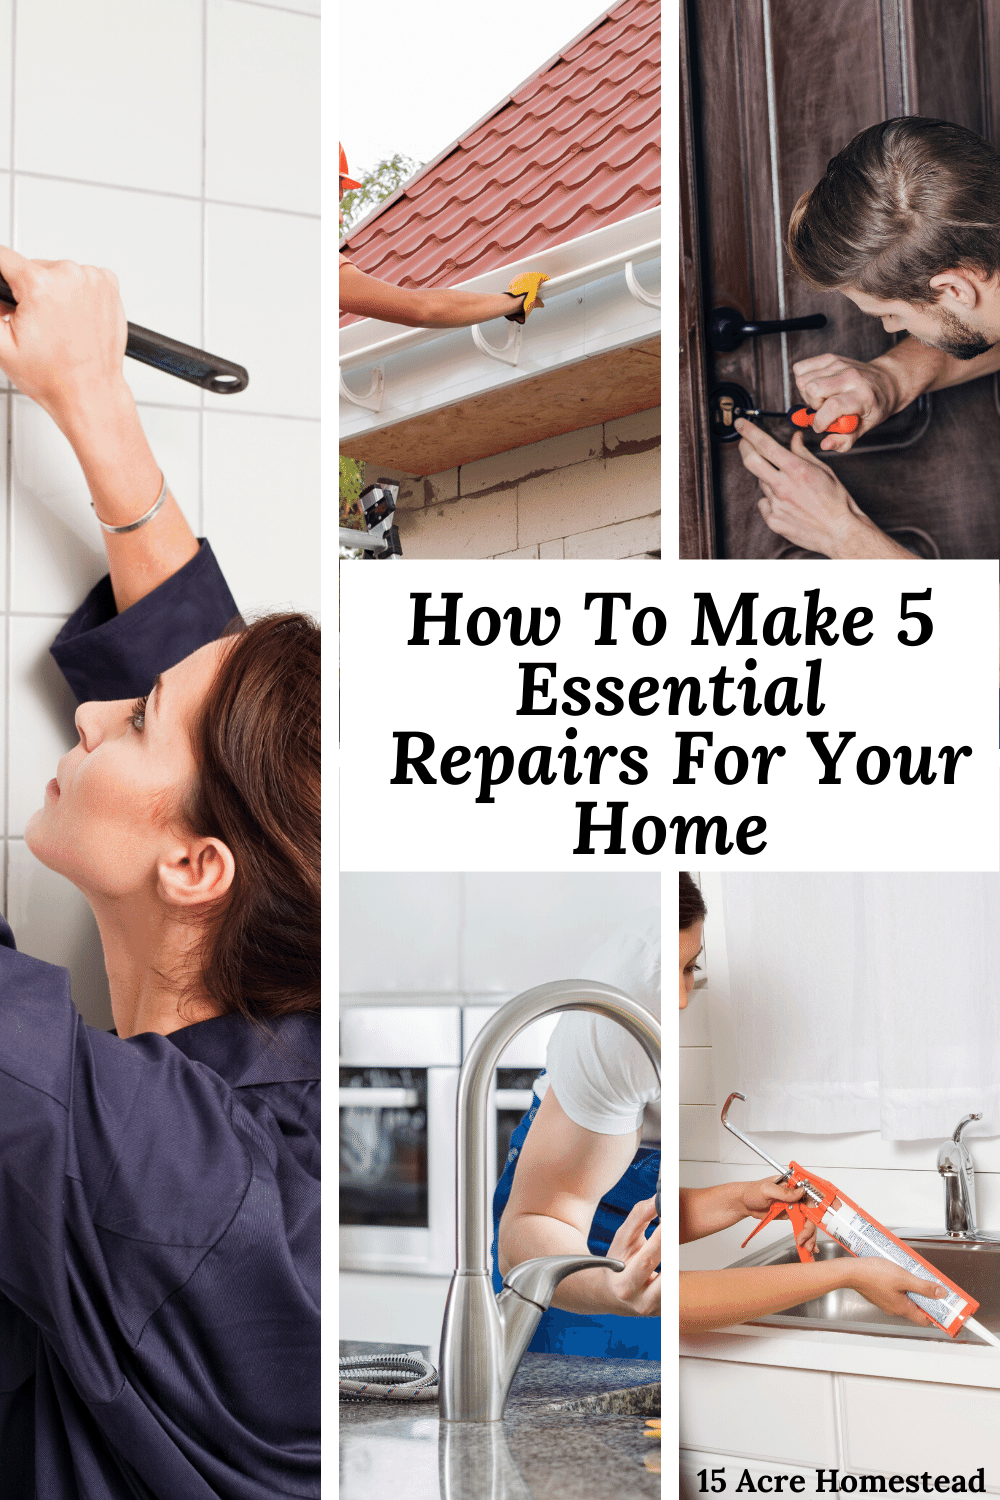 Use the tips here, to make essential repairs for your home before it costs more than you bargained for.